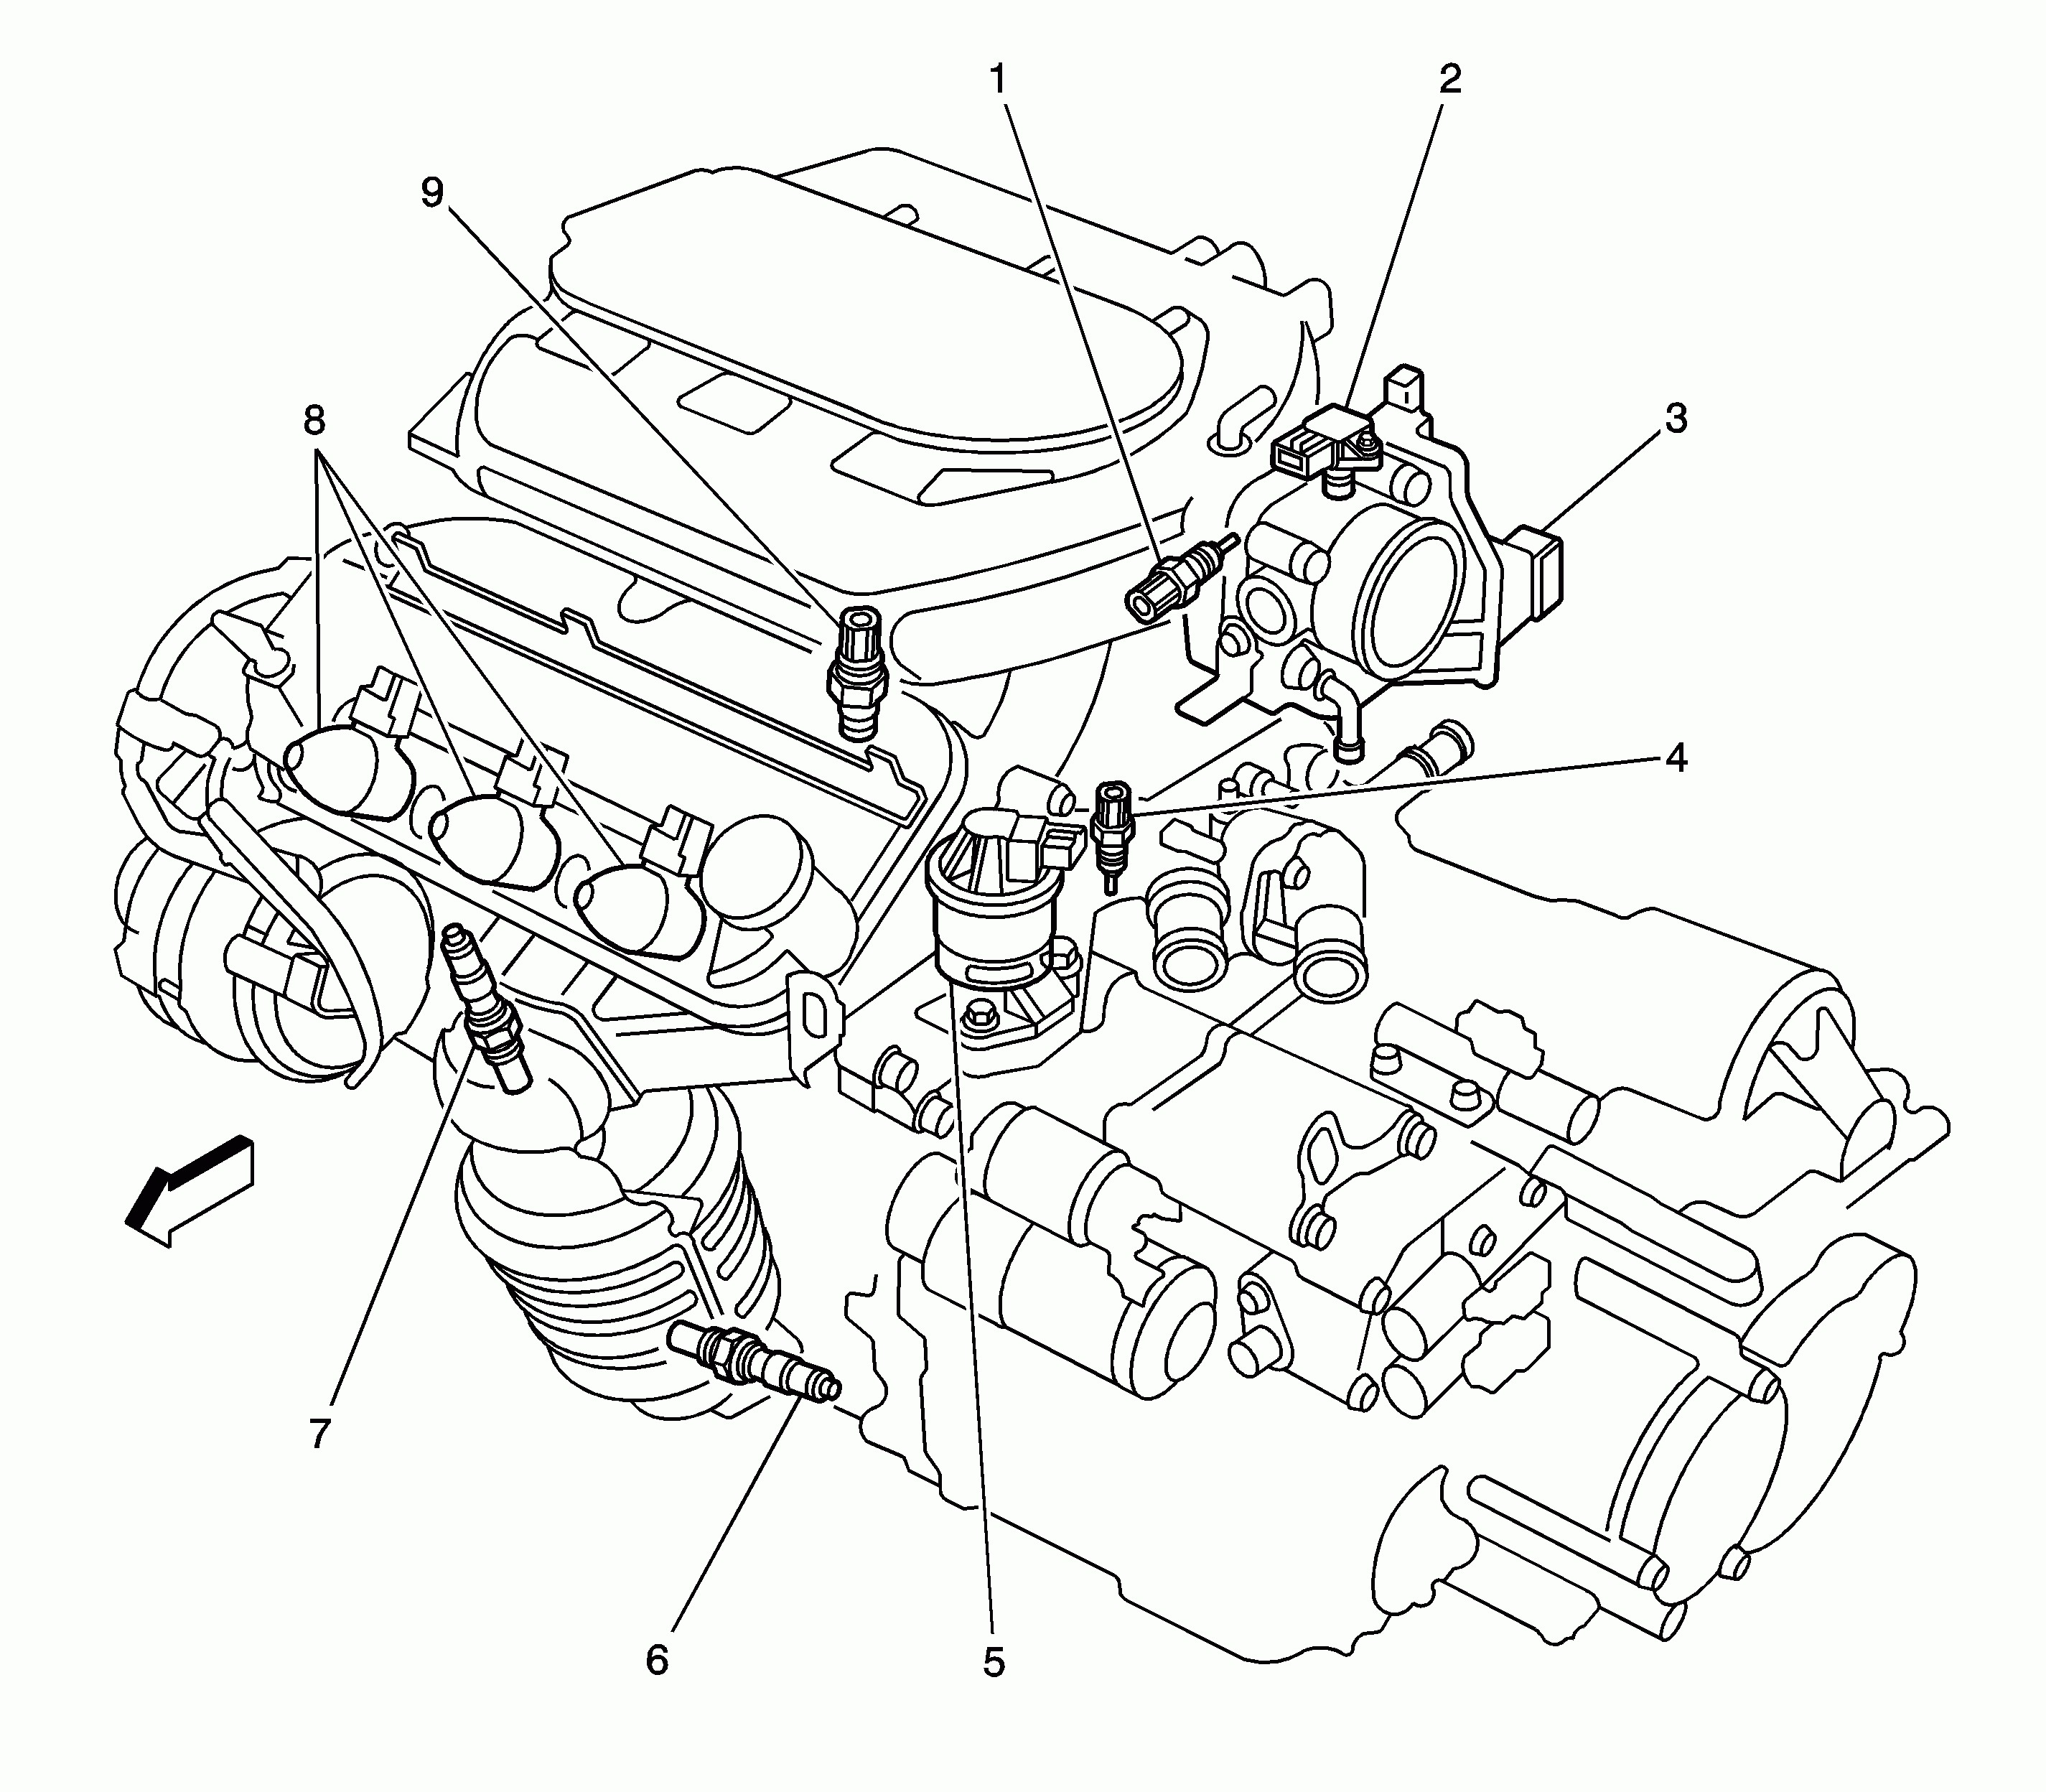 2003 Saturn Sl2 Engine Diagram Not Lossing Wiring Vue Air Conditioning Simple Diagrams Rh 16 Studio011 De 1999